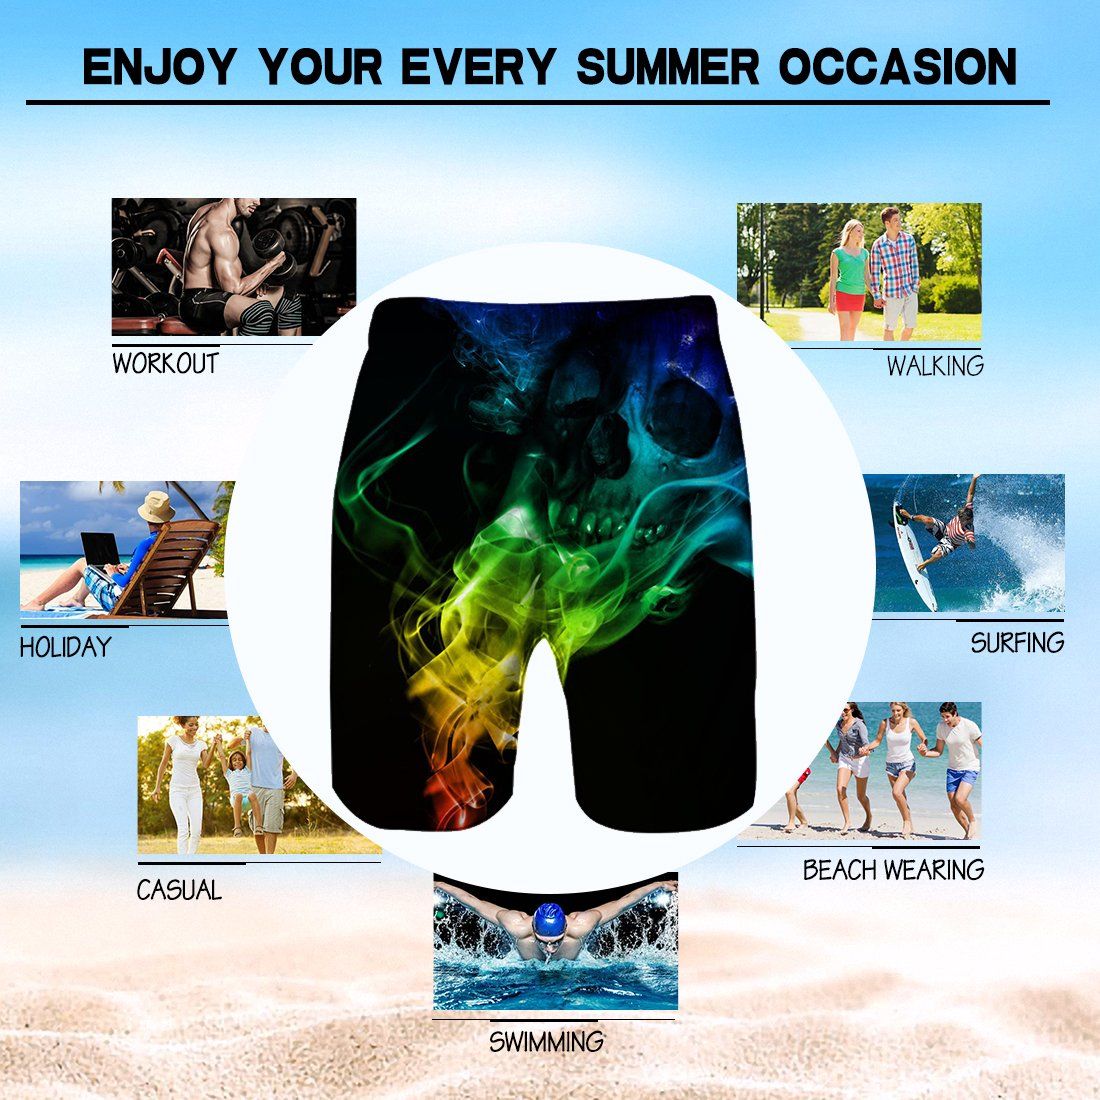 Alistyle Mens Boys Medium Length 3D Print Smoke Graphic Summer Beach Shorts Surfing Trunks by Alistyle (Image #6)